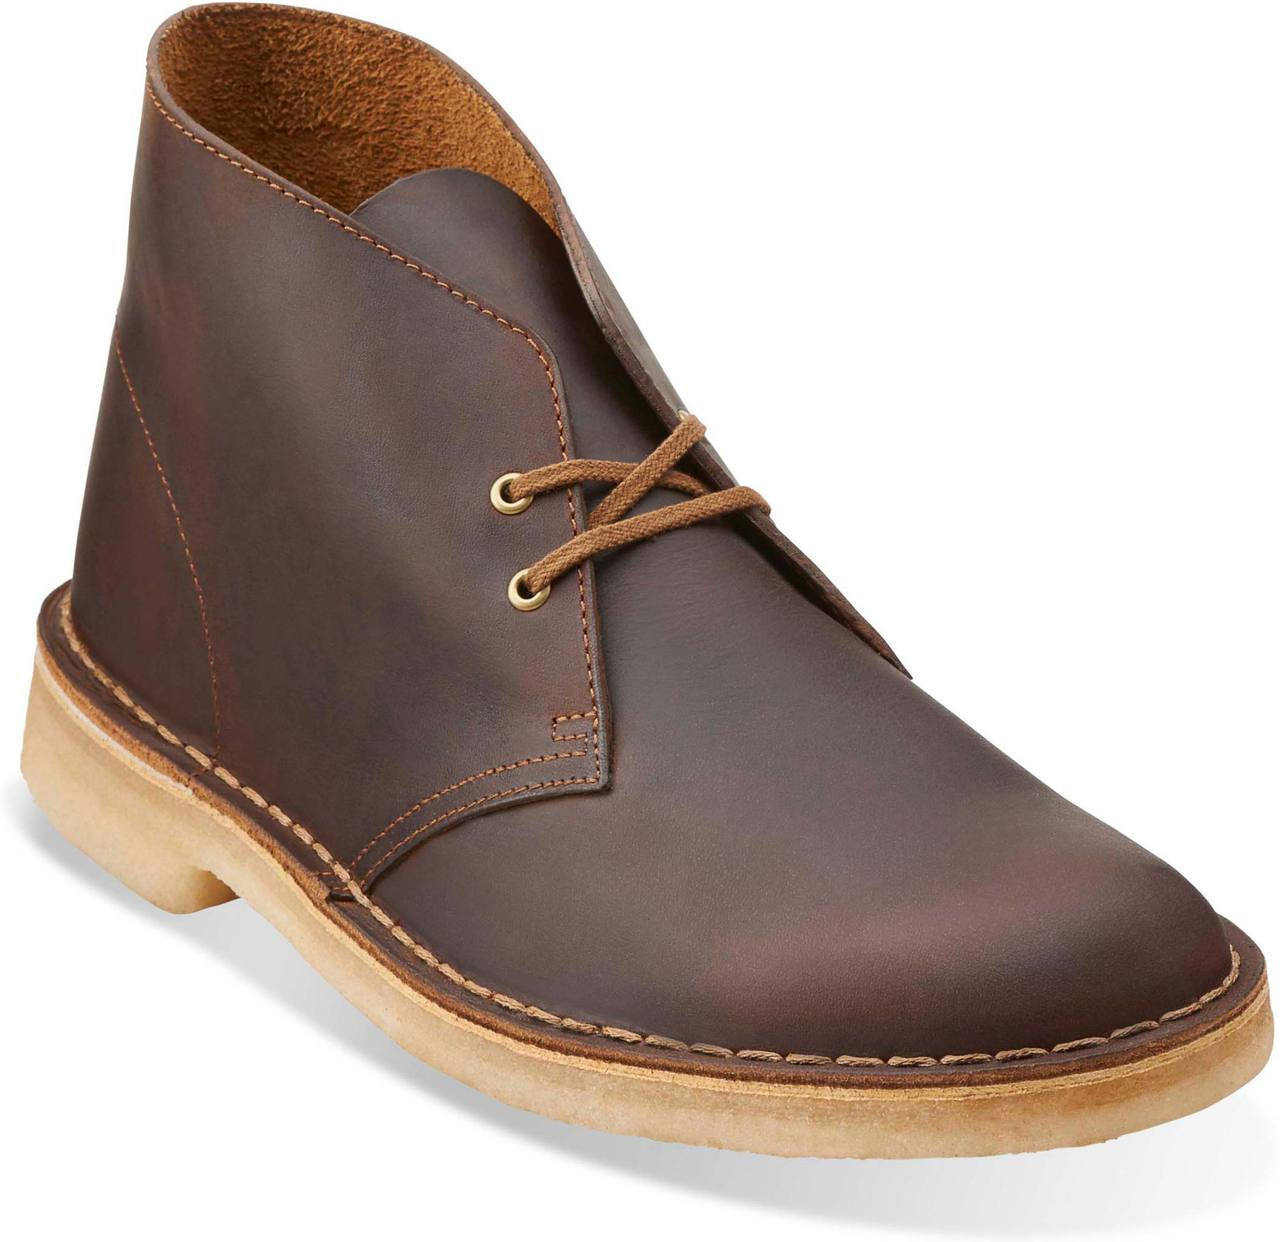 Clarks Men's Desert Boot in Beeswax Leather